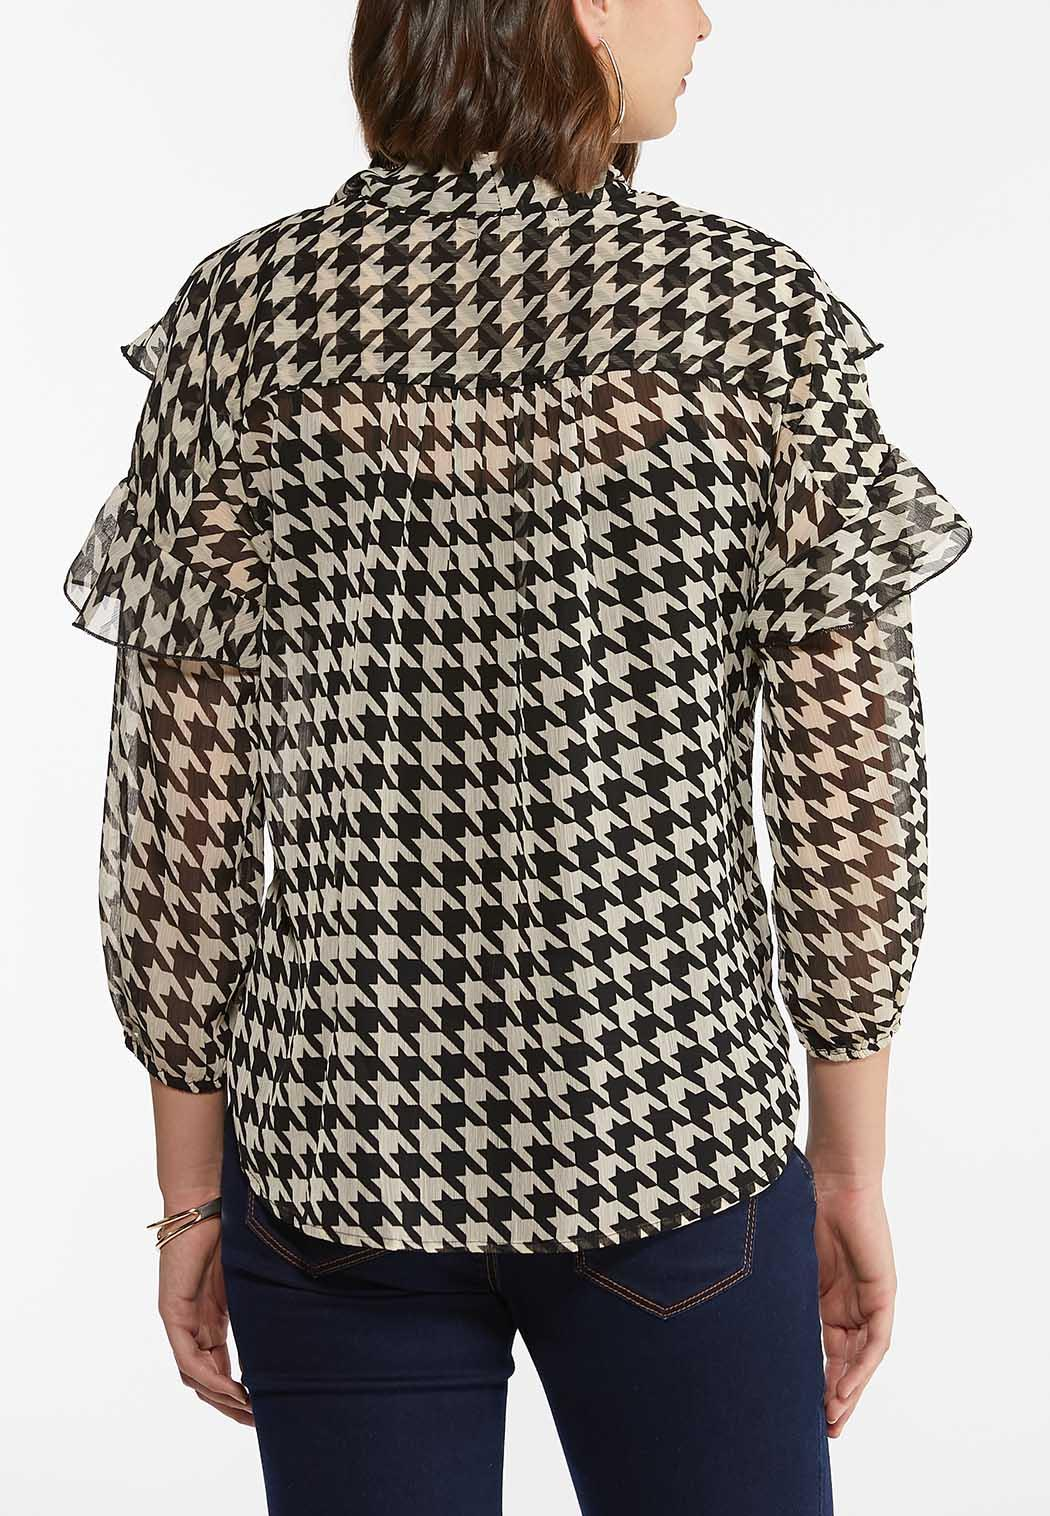 Ruffled Houndstooth Top (Item #44356954)